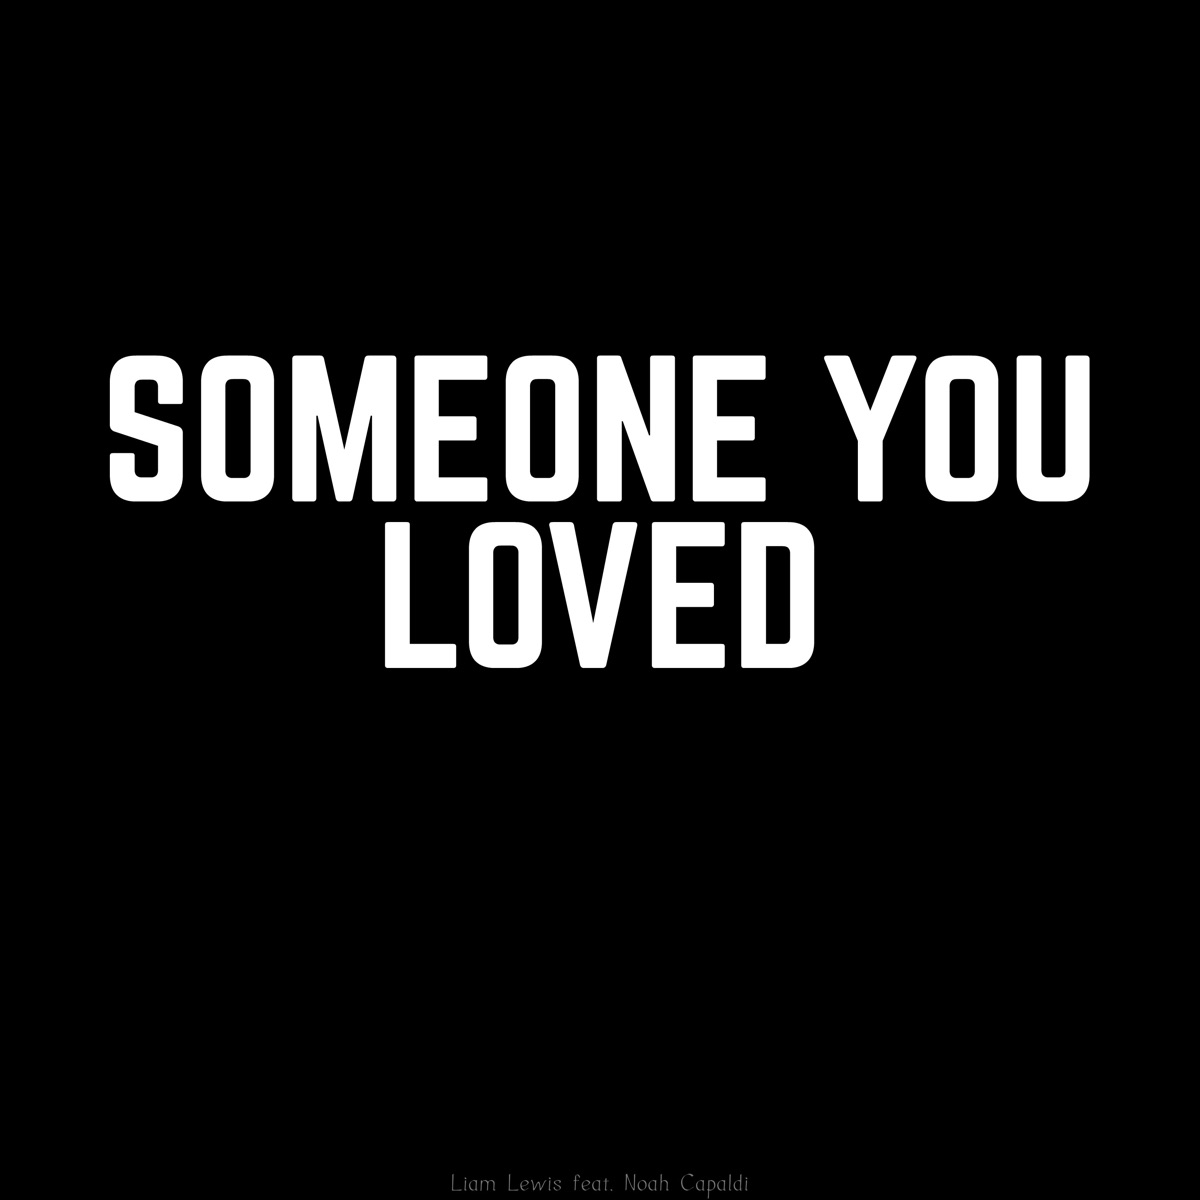 Someone You Loved feat Noah Capaldi - Single Liam Lewis CD cover